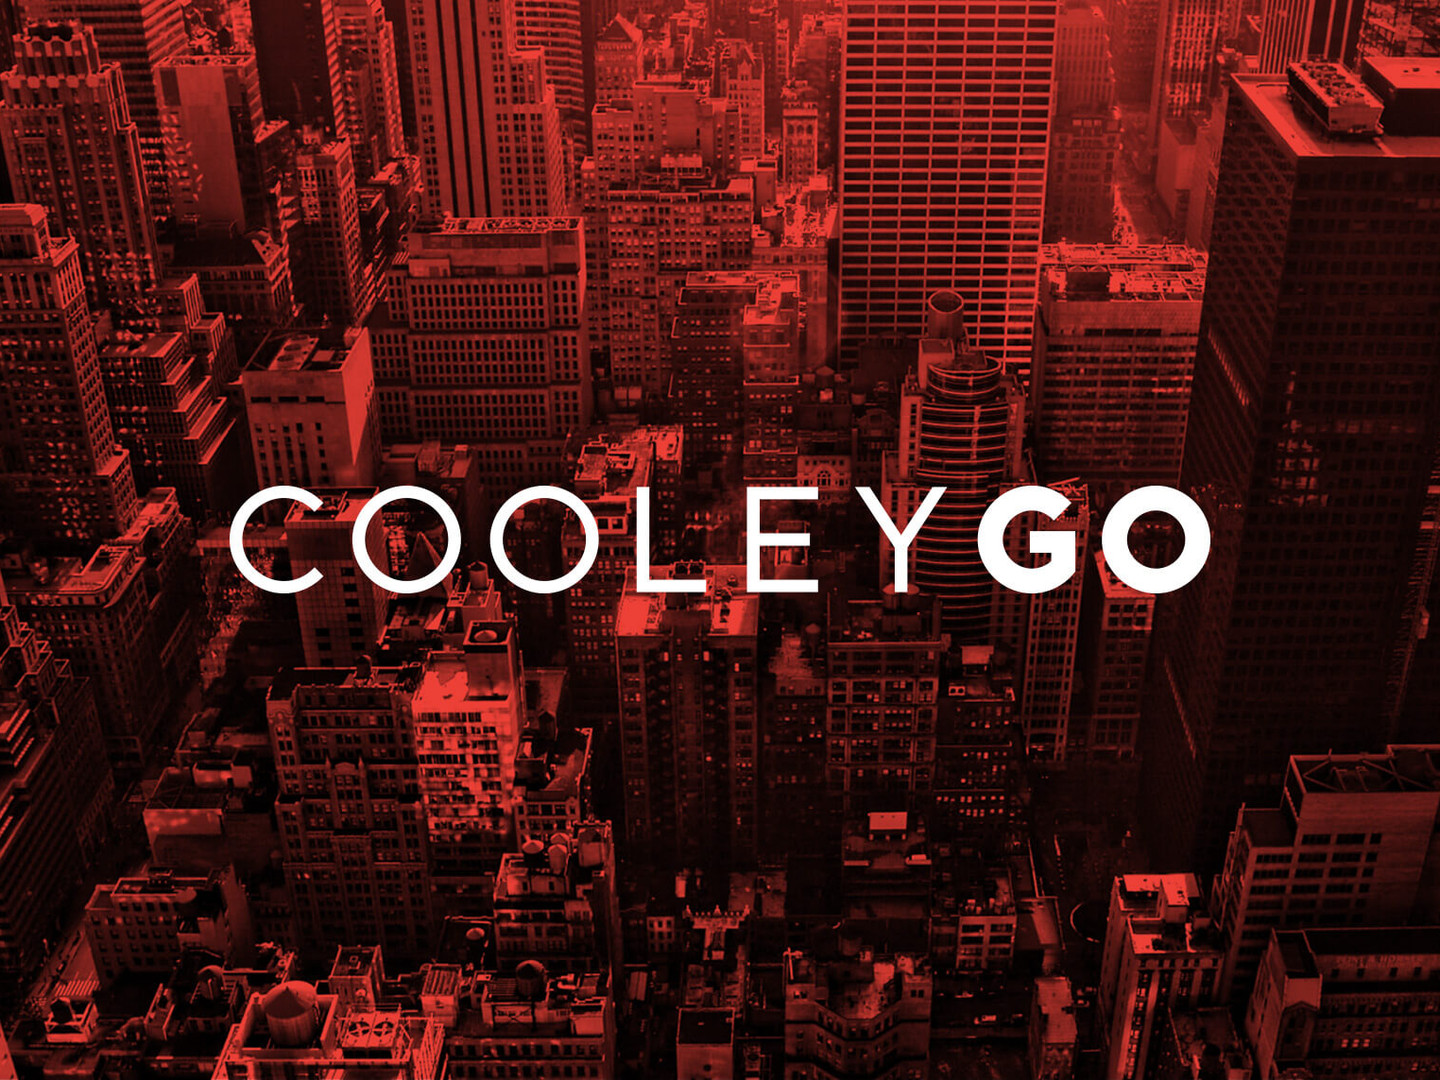 Cooley GO